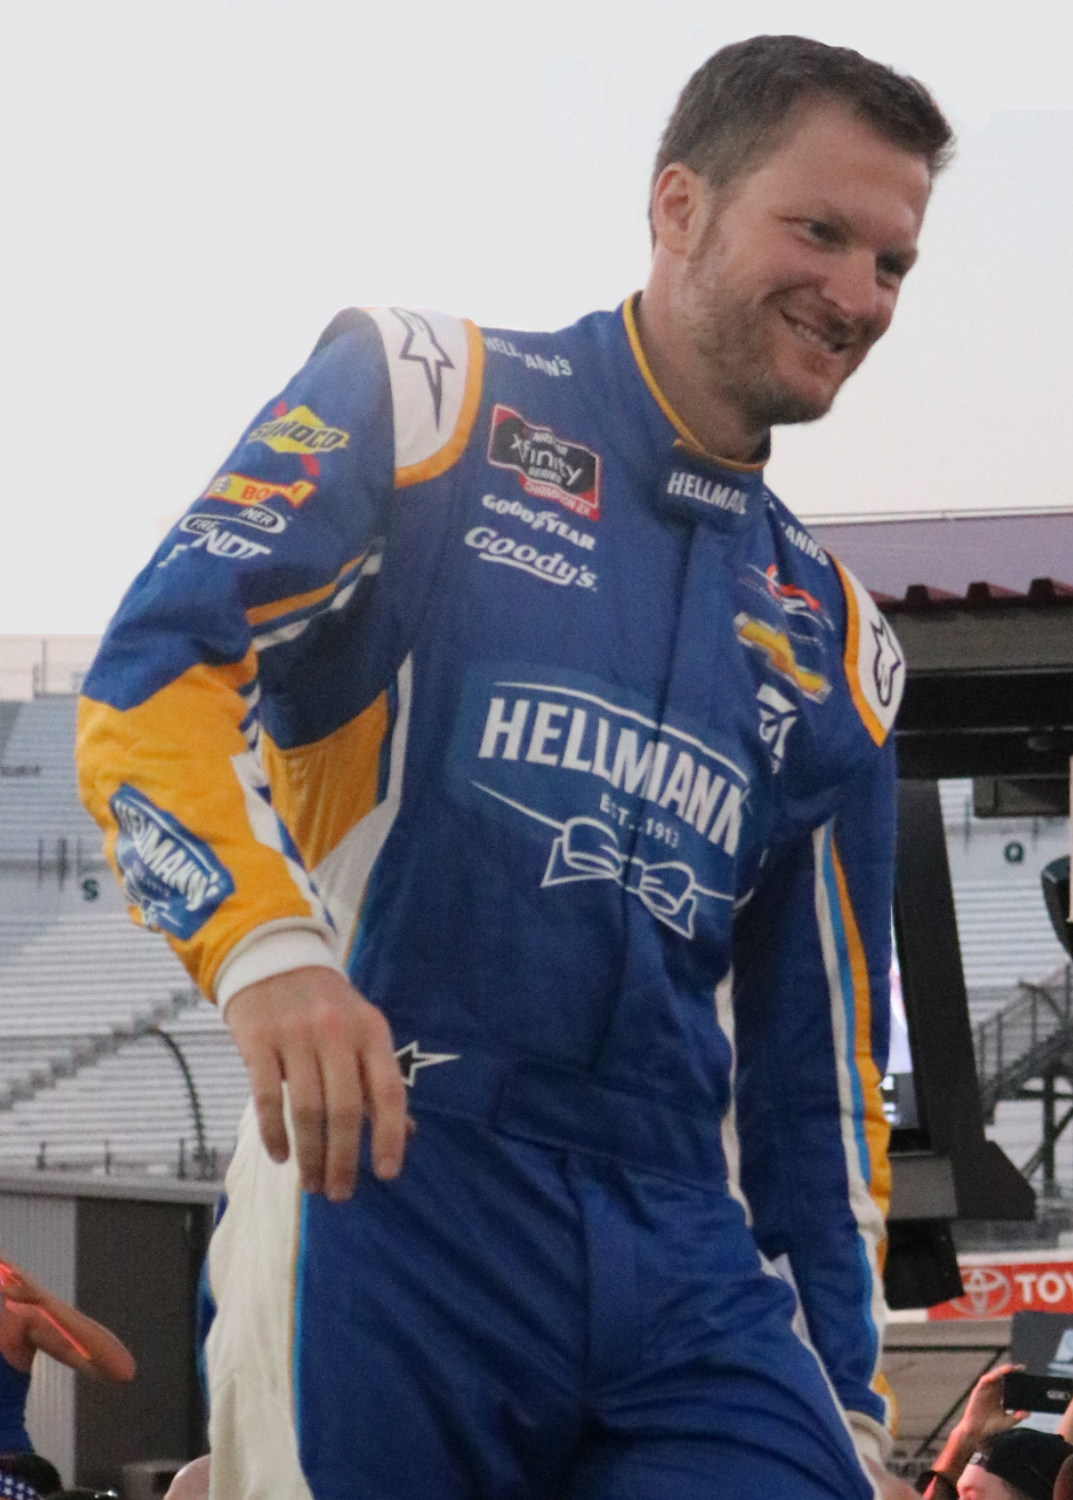 The 46-year old son of father Dale Earnhardt and mother Brenda Lorraine Gee Dale Earnhardt Jr. in 2021 photo. Dale Earnhardt Jr. earned a  million dollar salary - leaving the net worth at 300 million in 2021